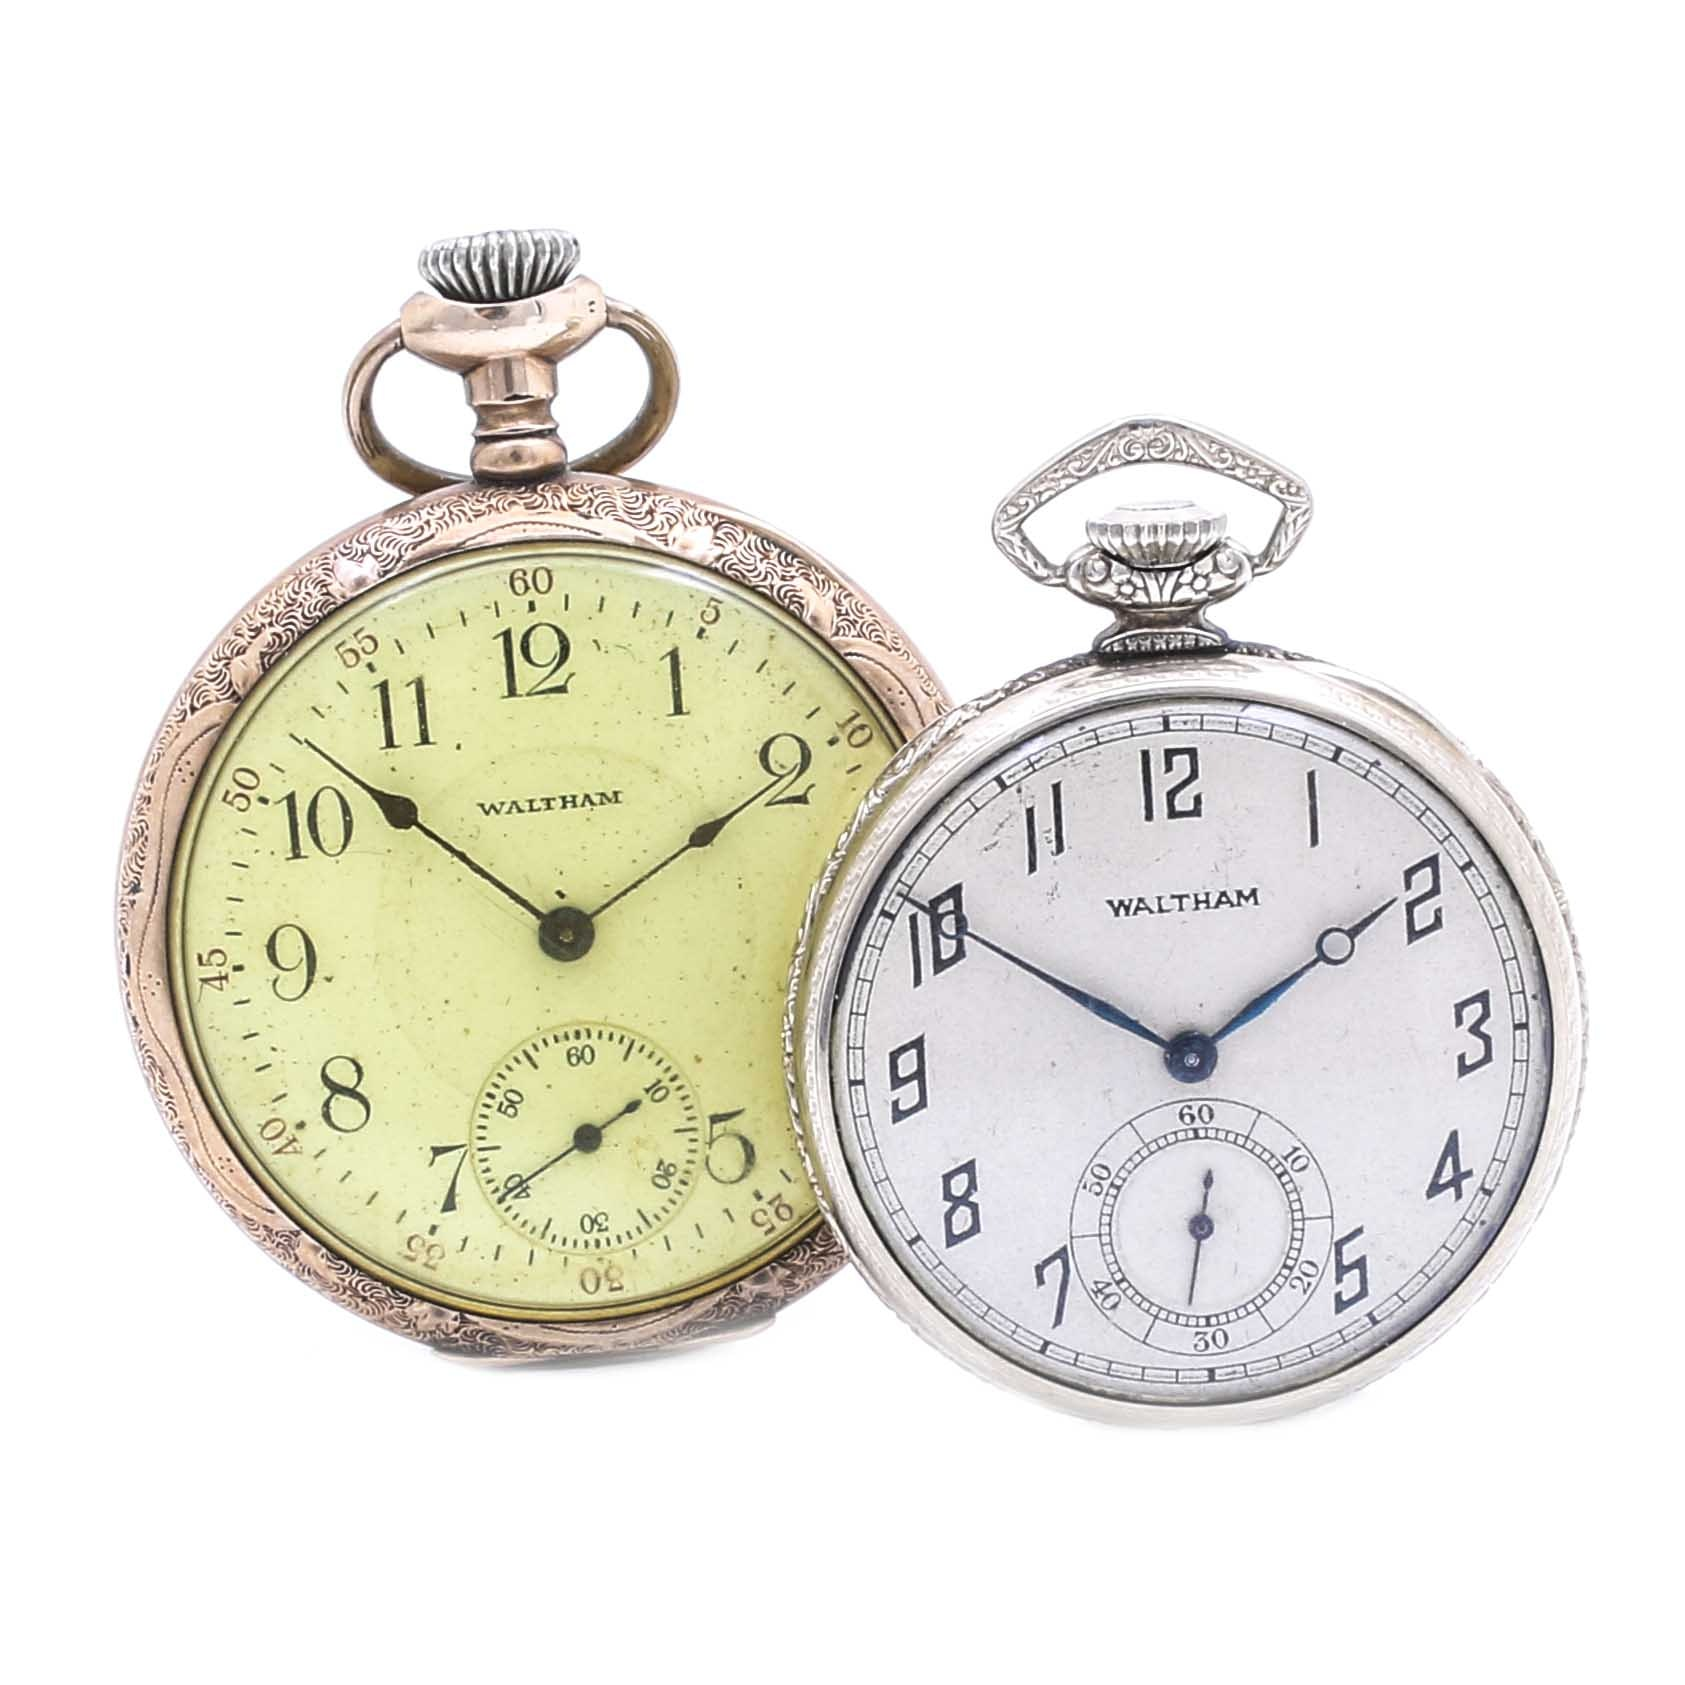 Pair of Waltham Gold Filled Pocket Watches